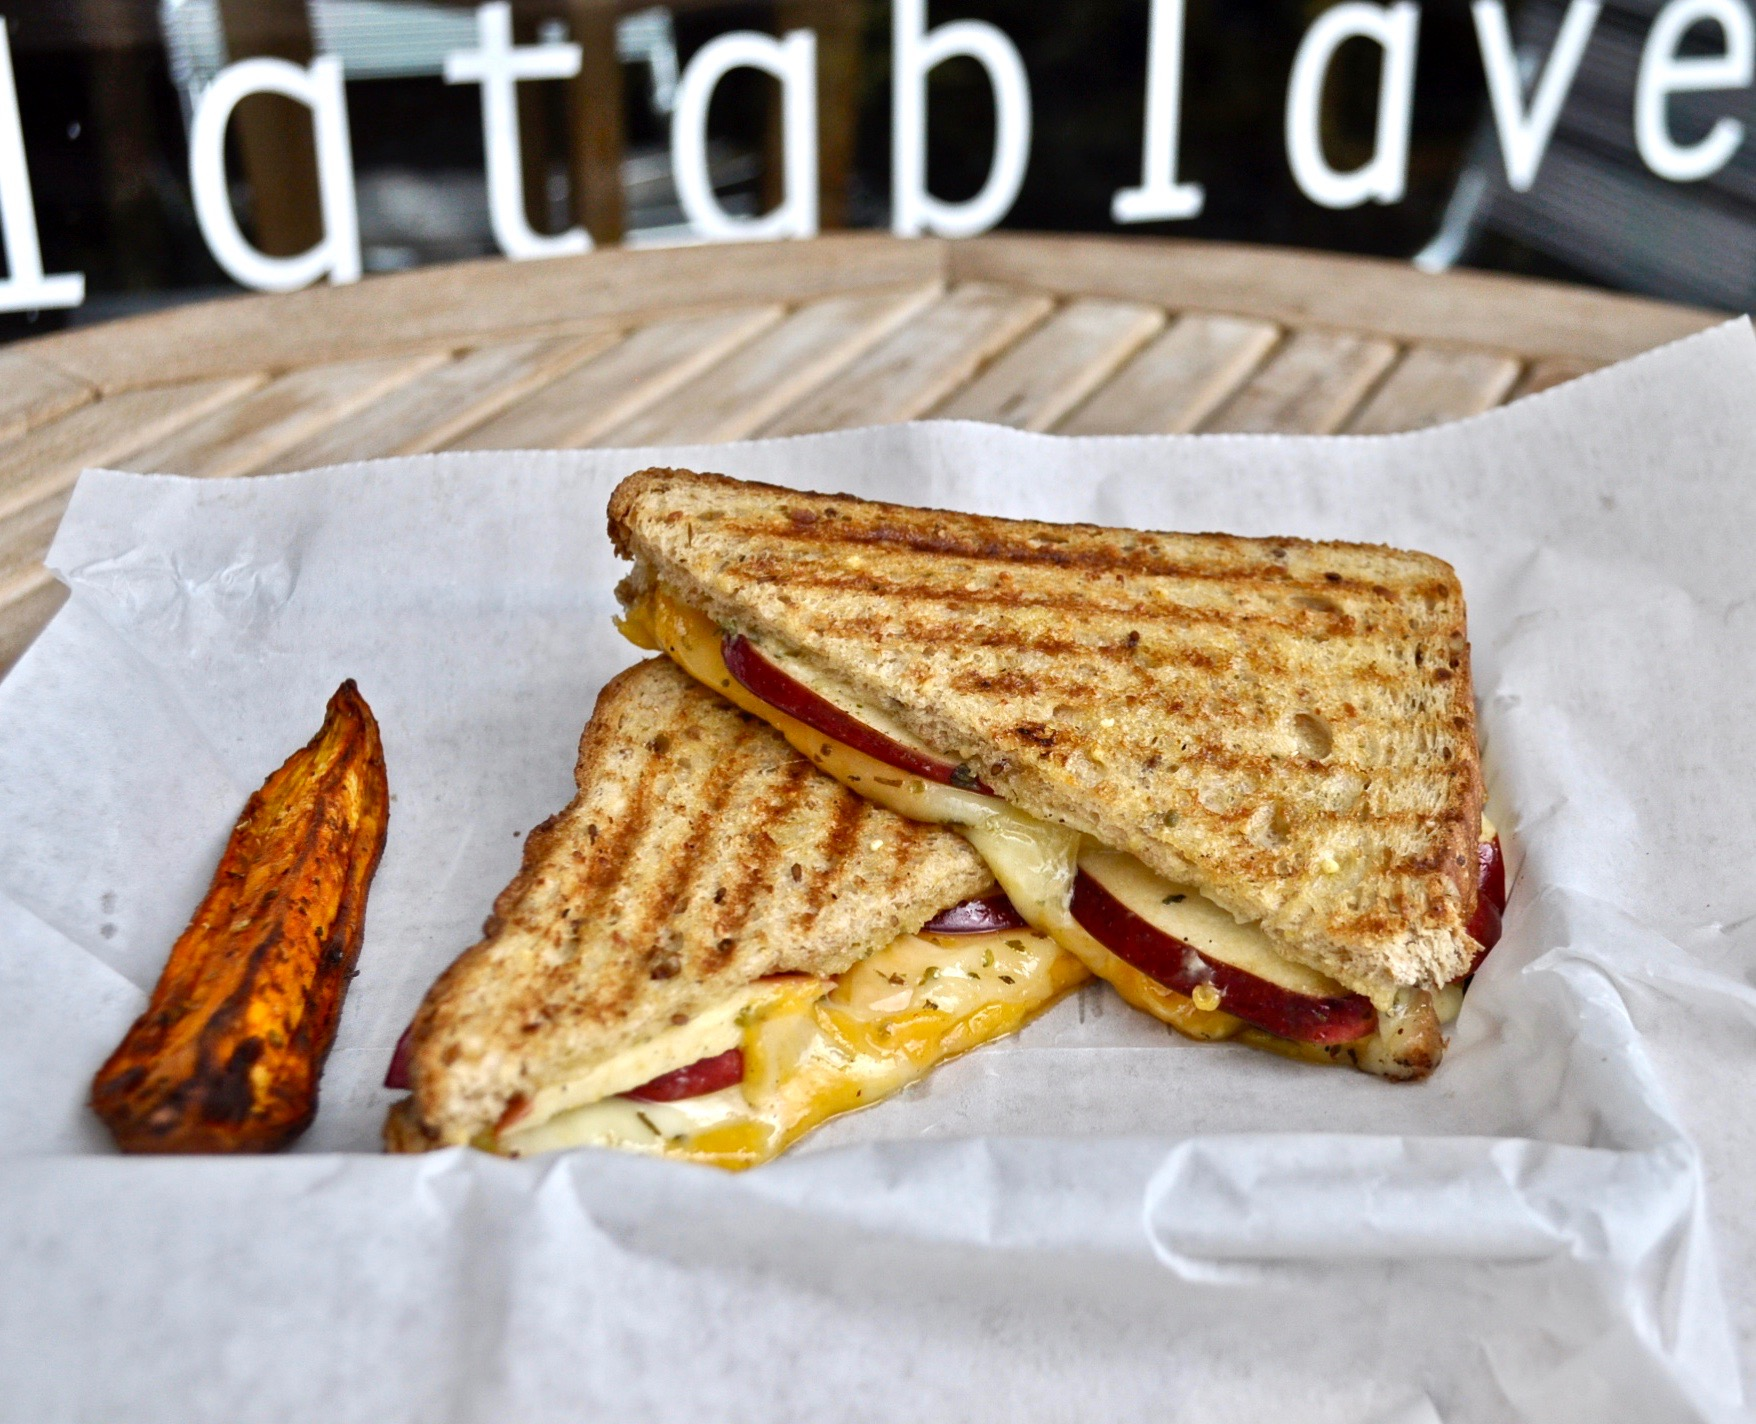 The Meltdown - Grilled Cheese with Apple Slices Image